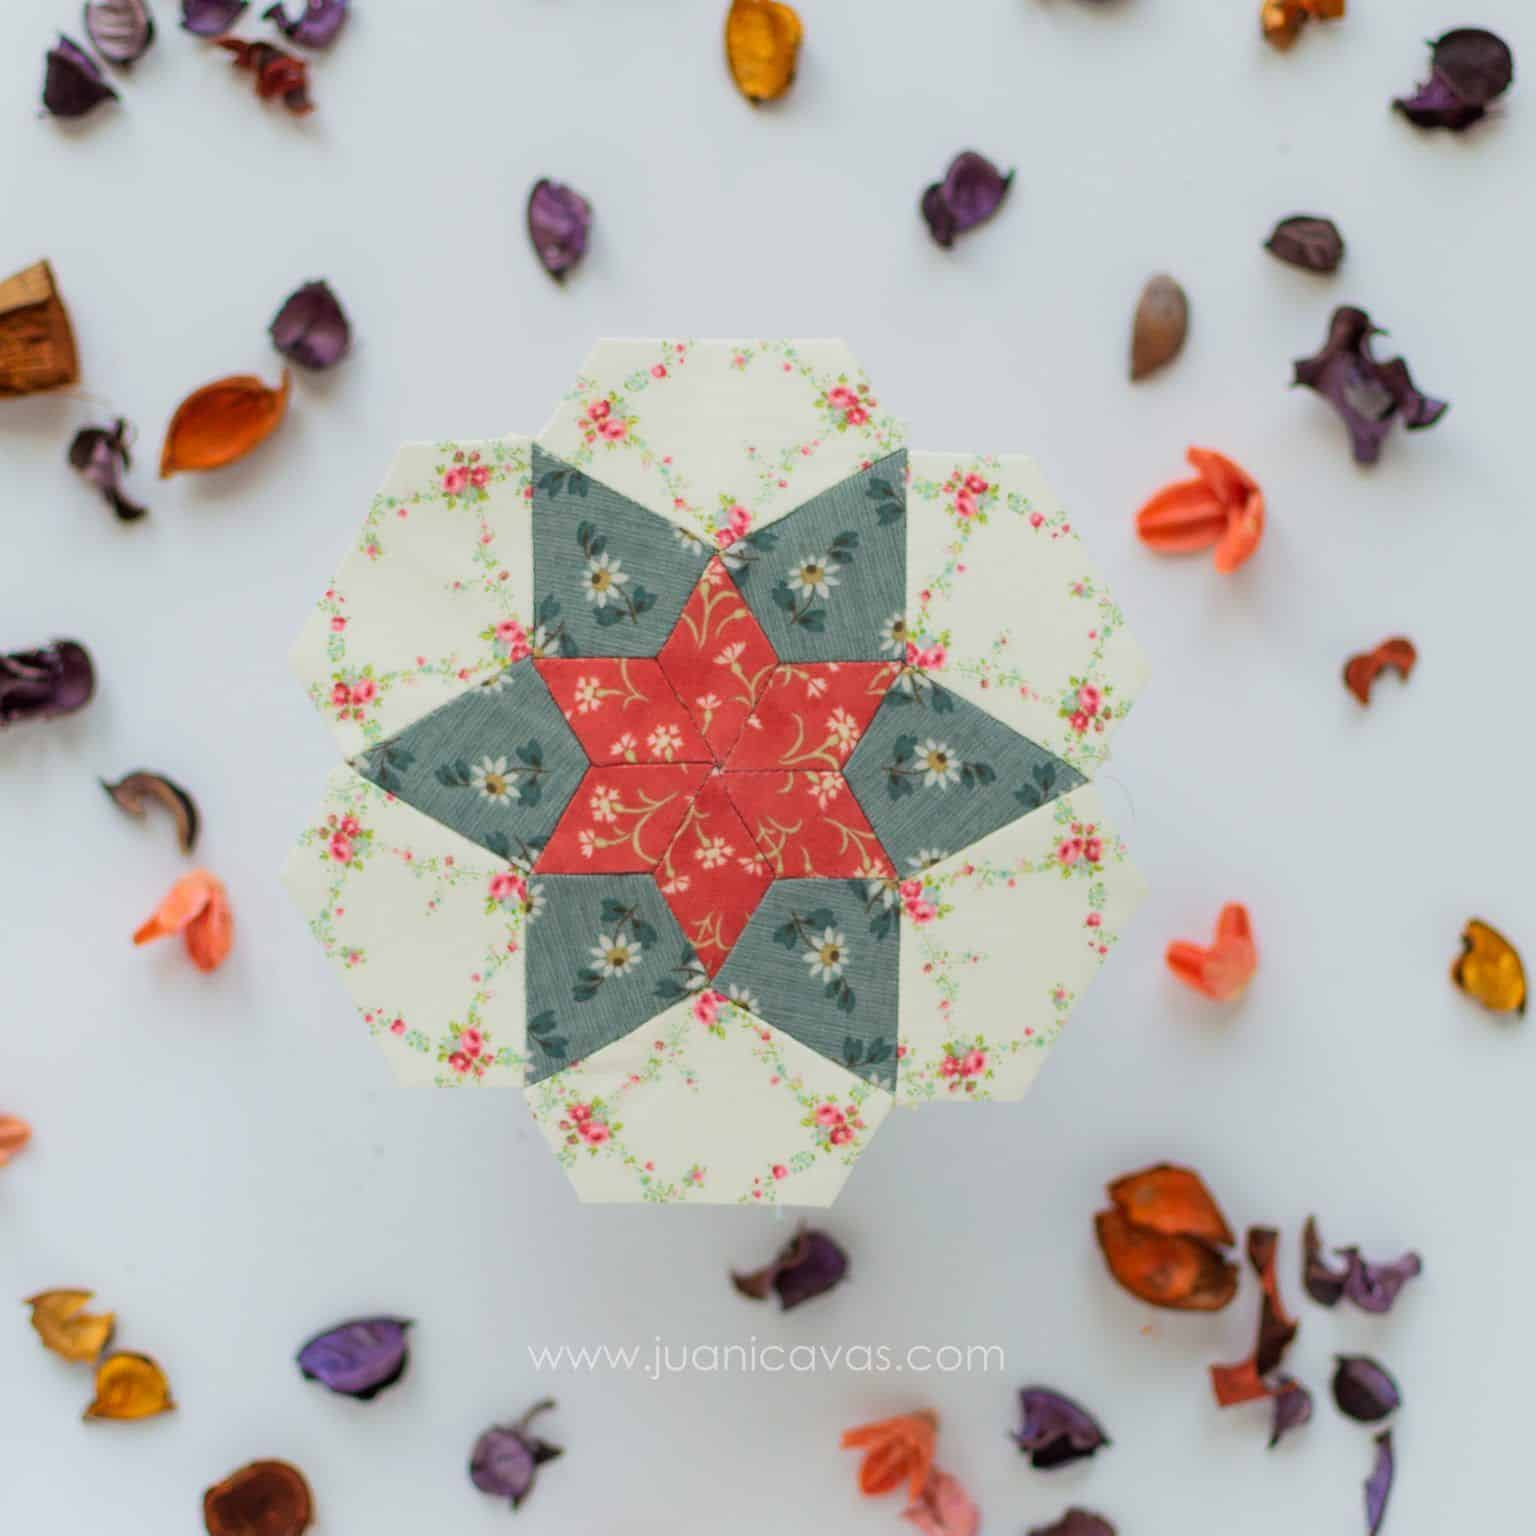 Chocolate de naranja patchwork quilt kit rosetas-2